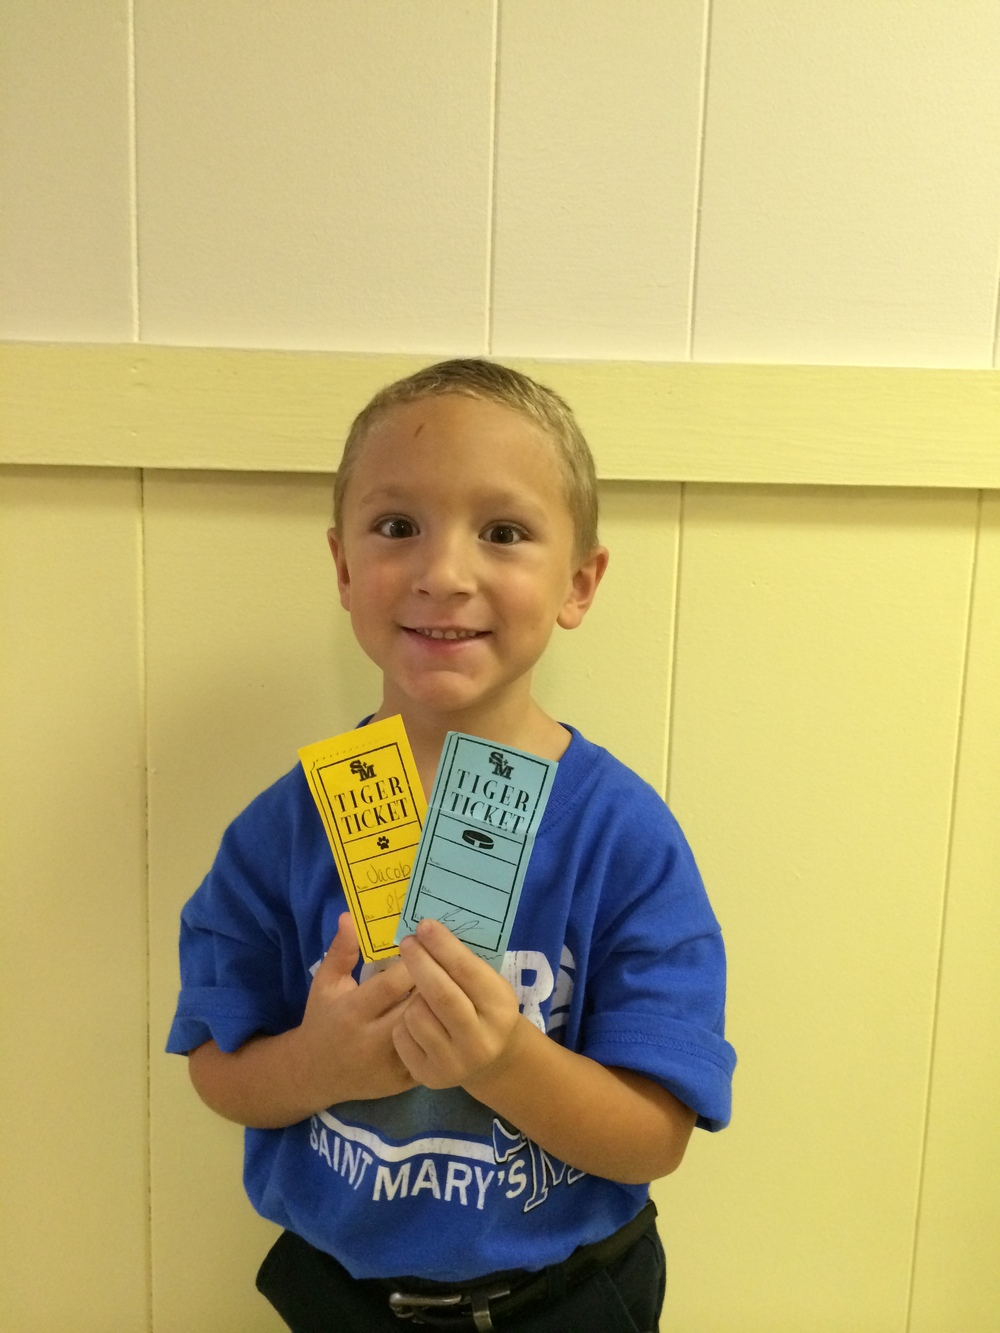 Jacob Thibodeaux and his Tiger Tickets